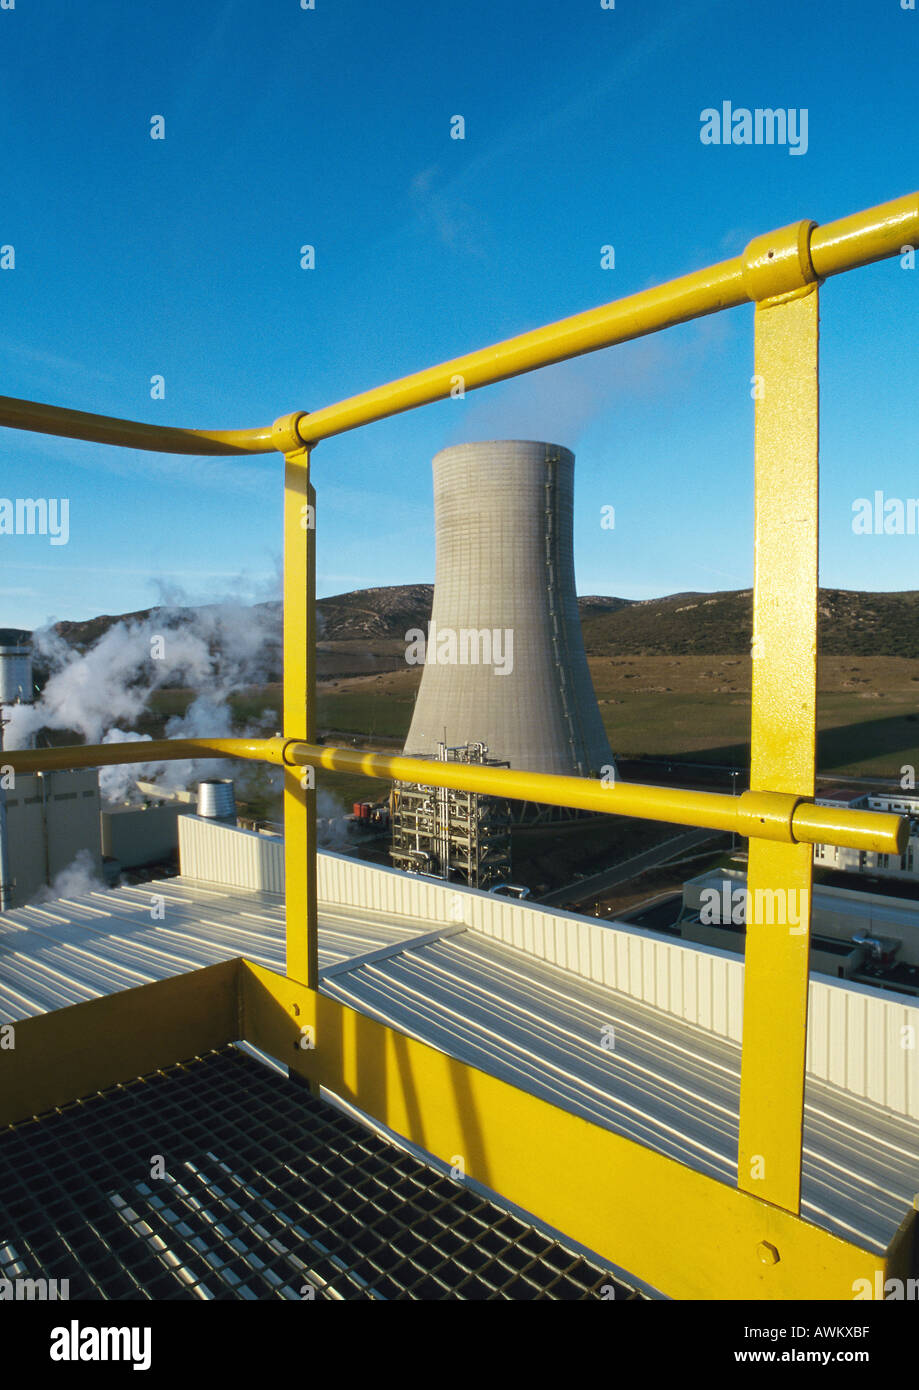 Guard rail, thermal power plant in background - Stock Image